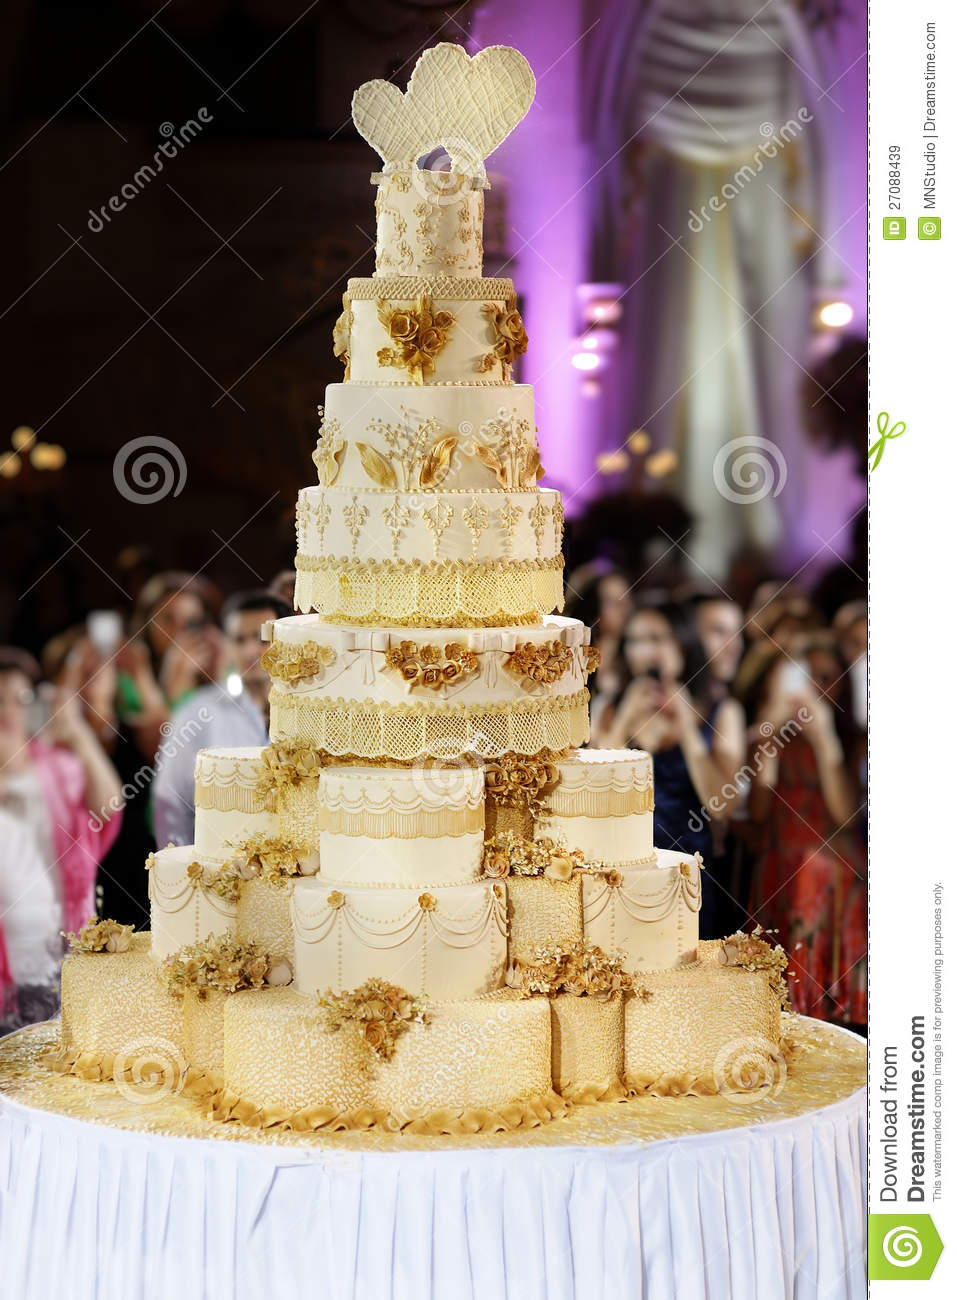 Giant Wedding Cake